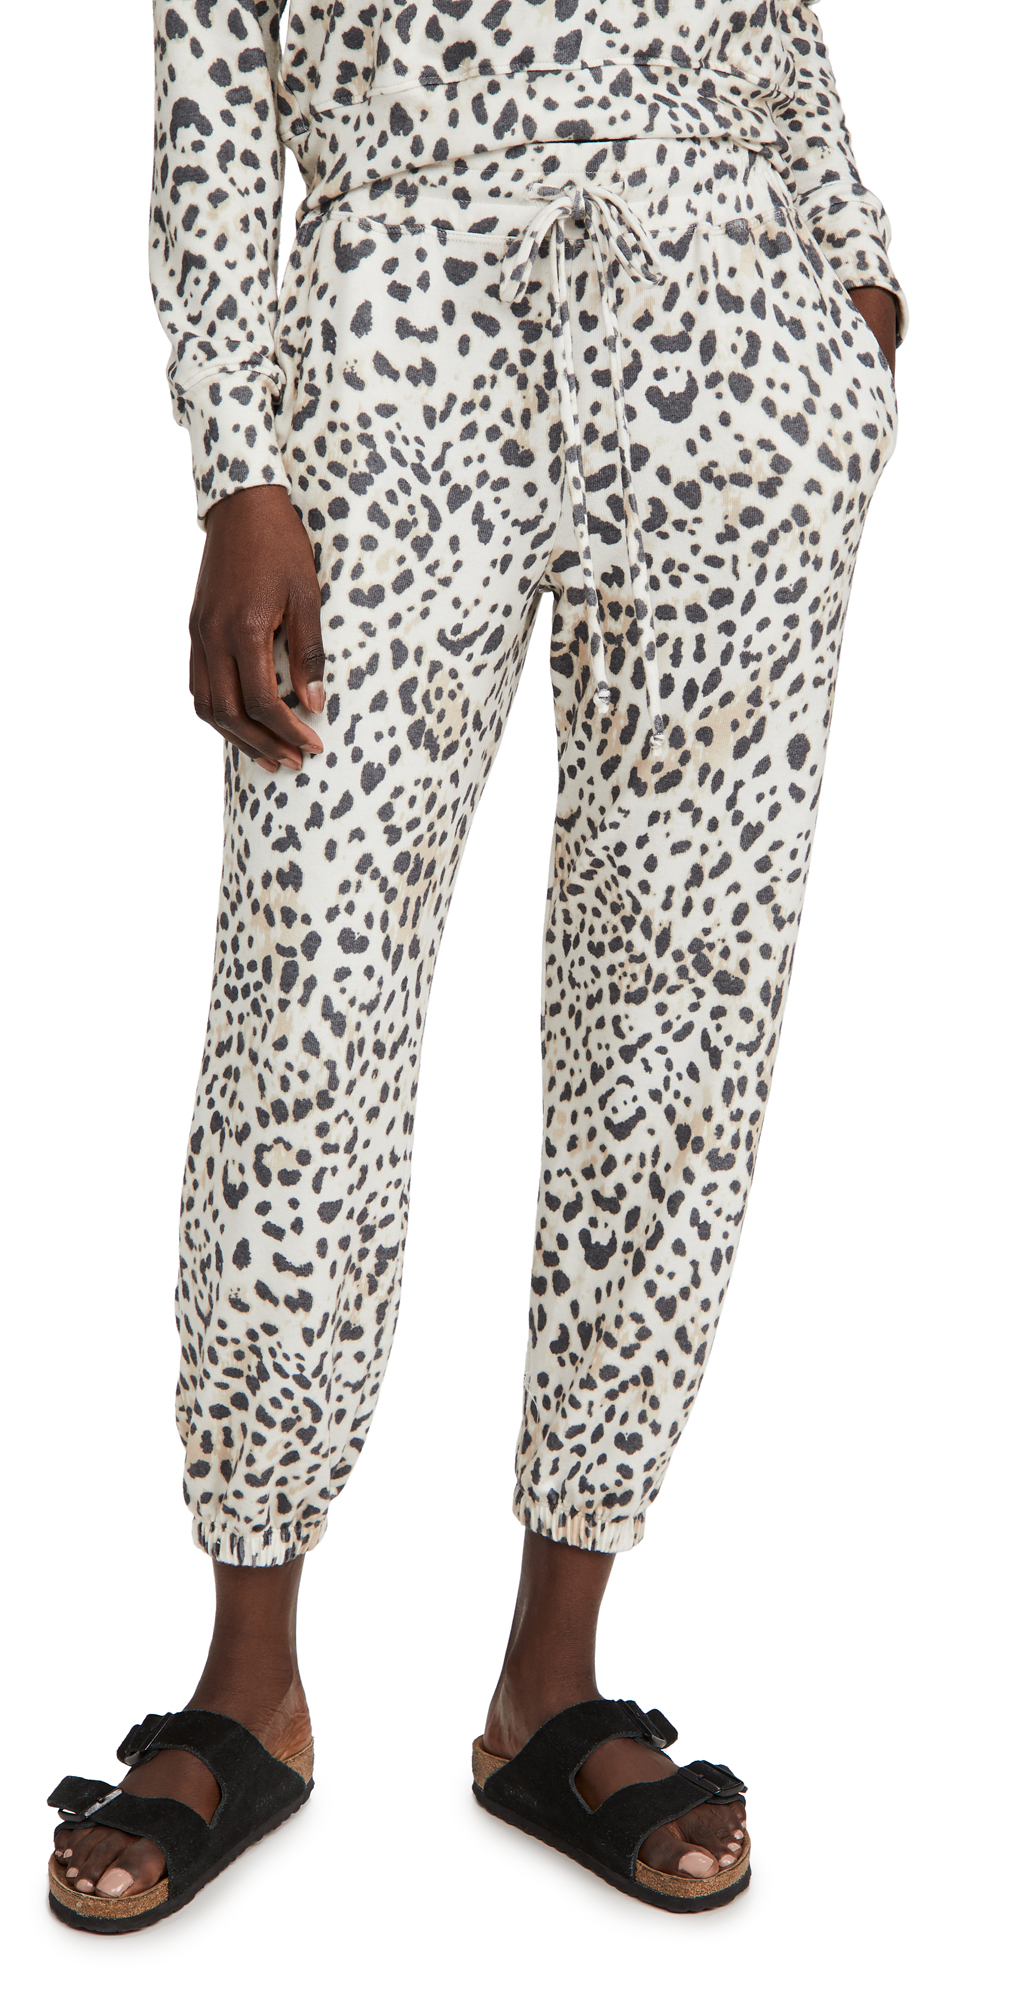 SUNDRY Leopard High Waist Sweatpants